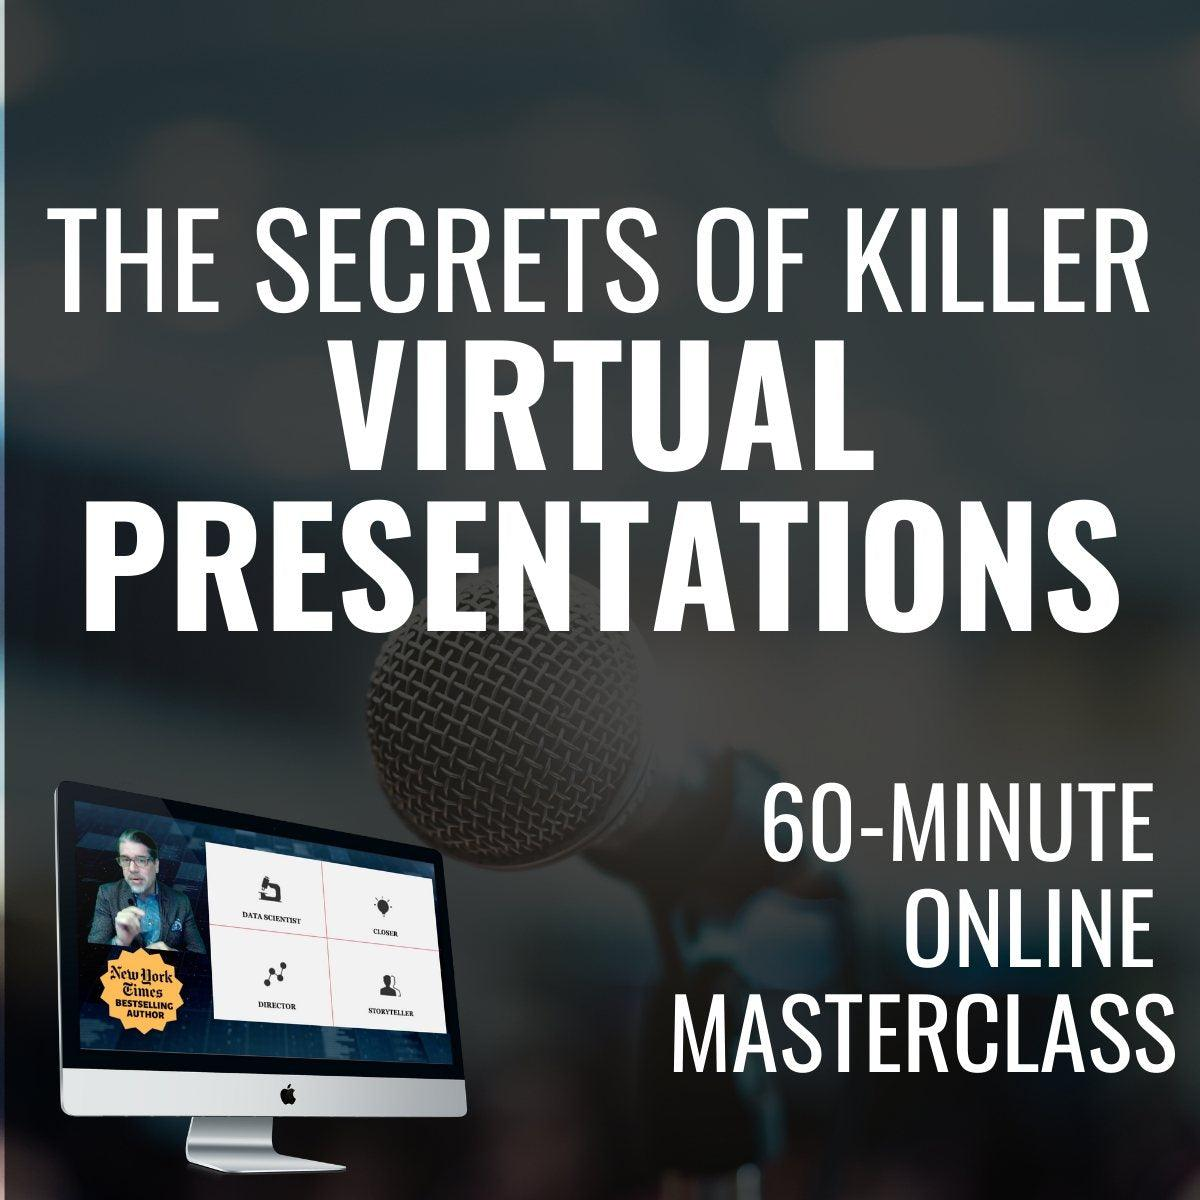 The Secrets Of Killer VIRTUAL PRESENTATIONS [MAY 7th, 1-2 PM EASTERN]